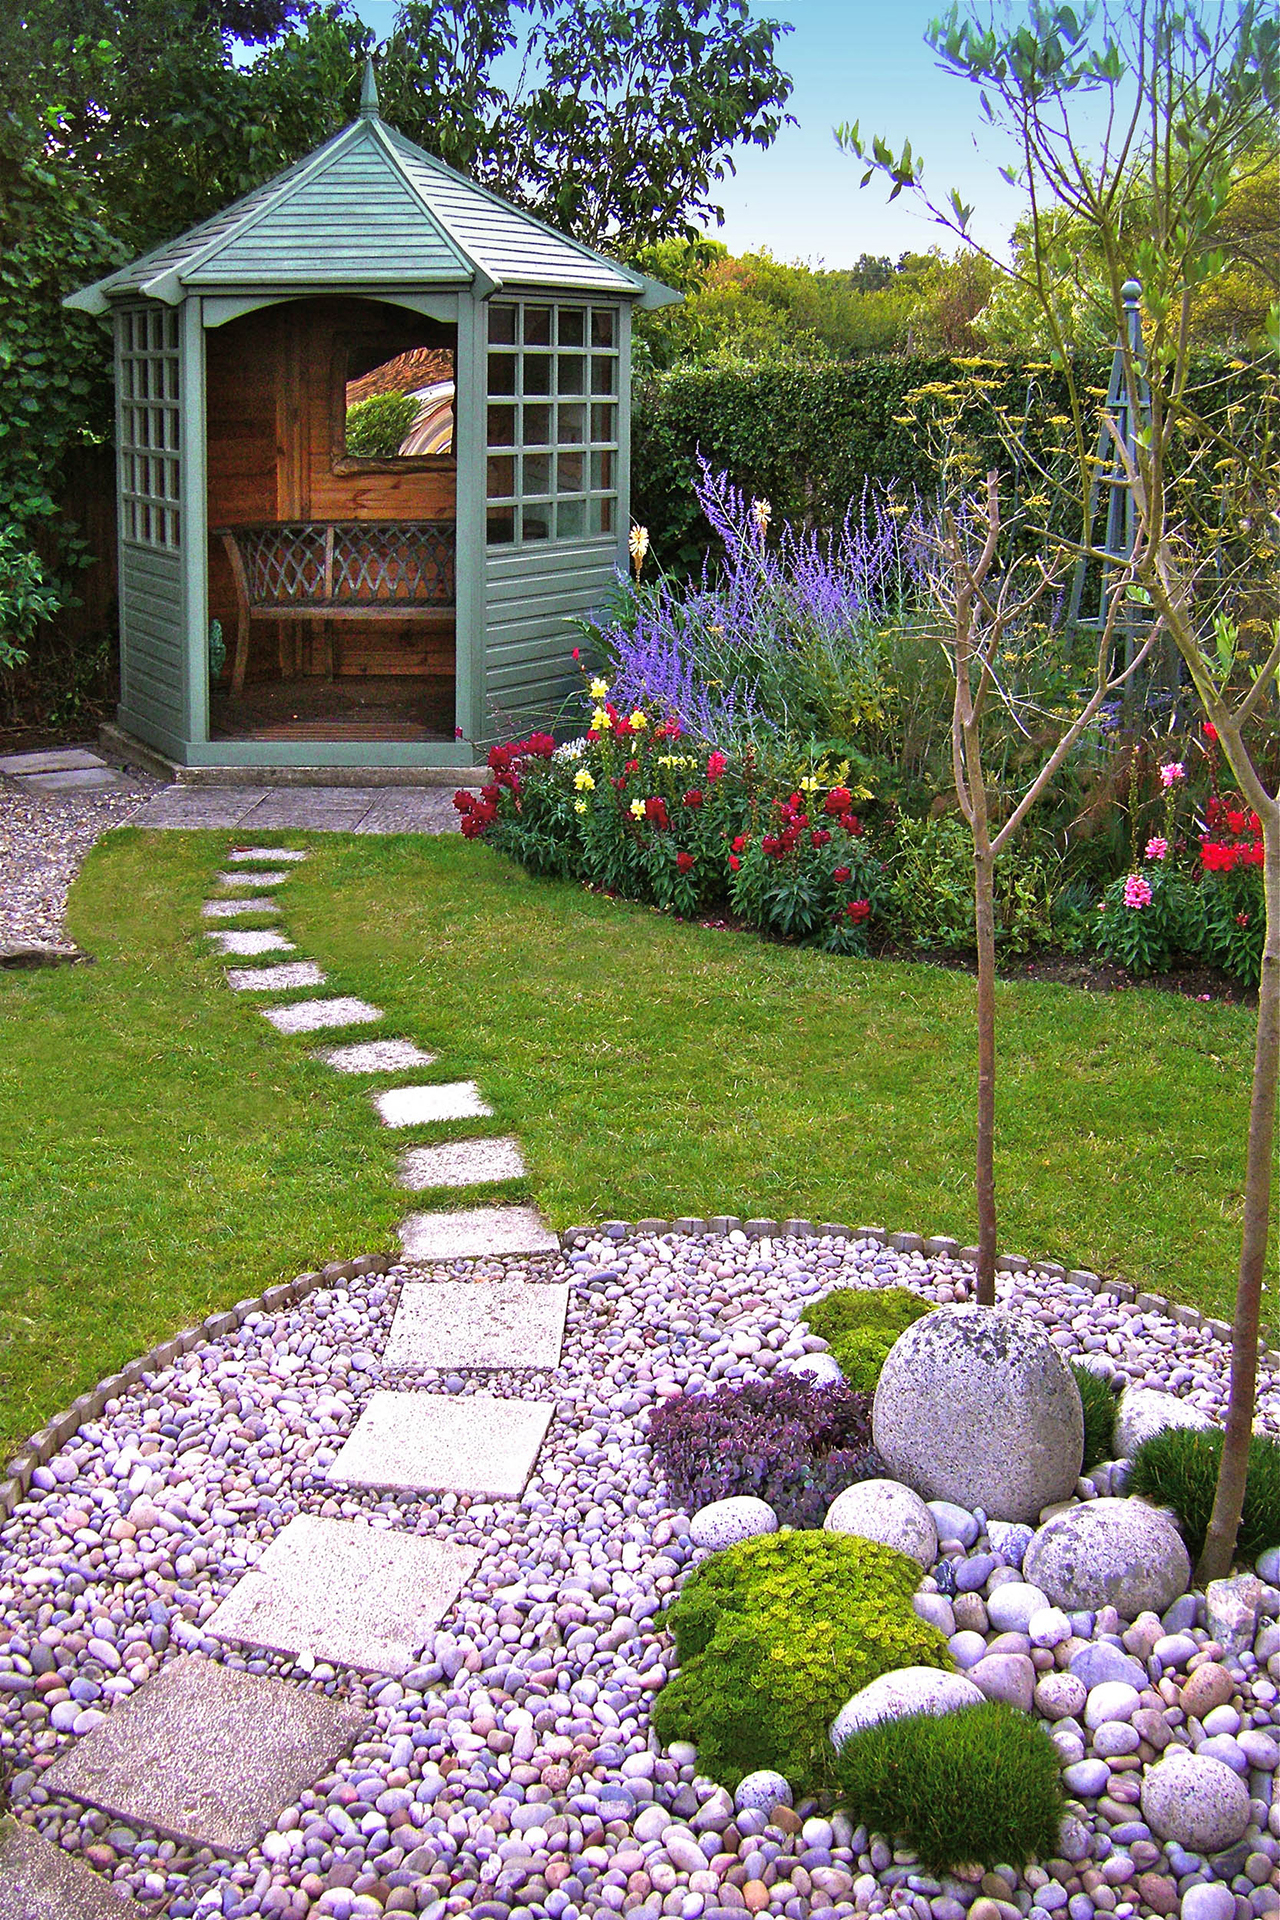 50 Best Backyard Landscaping Ideas And Designs In 2019 for Landscaped Backyards